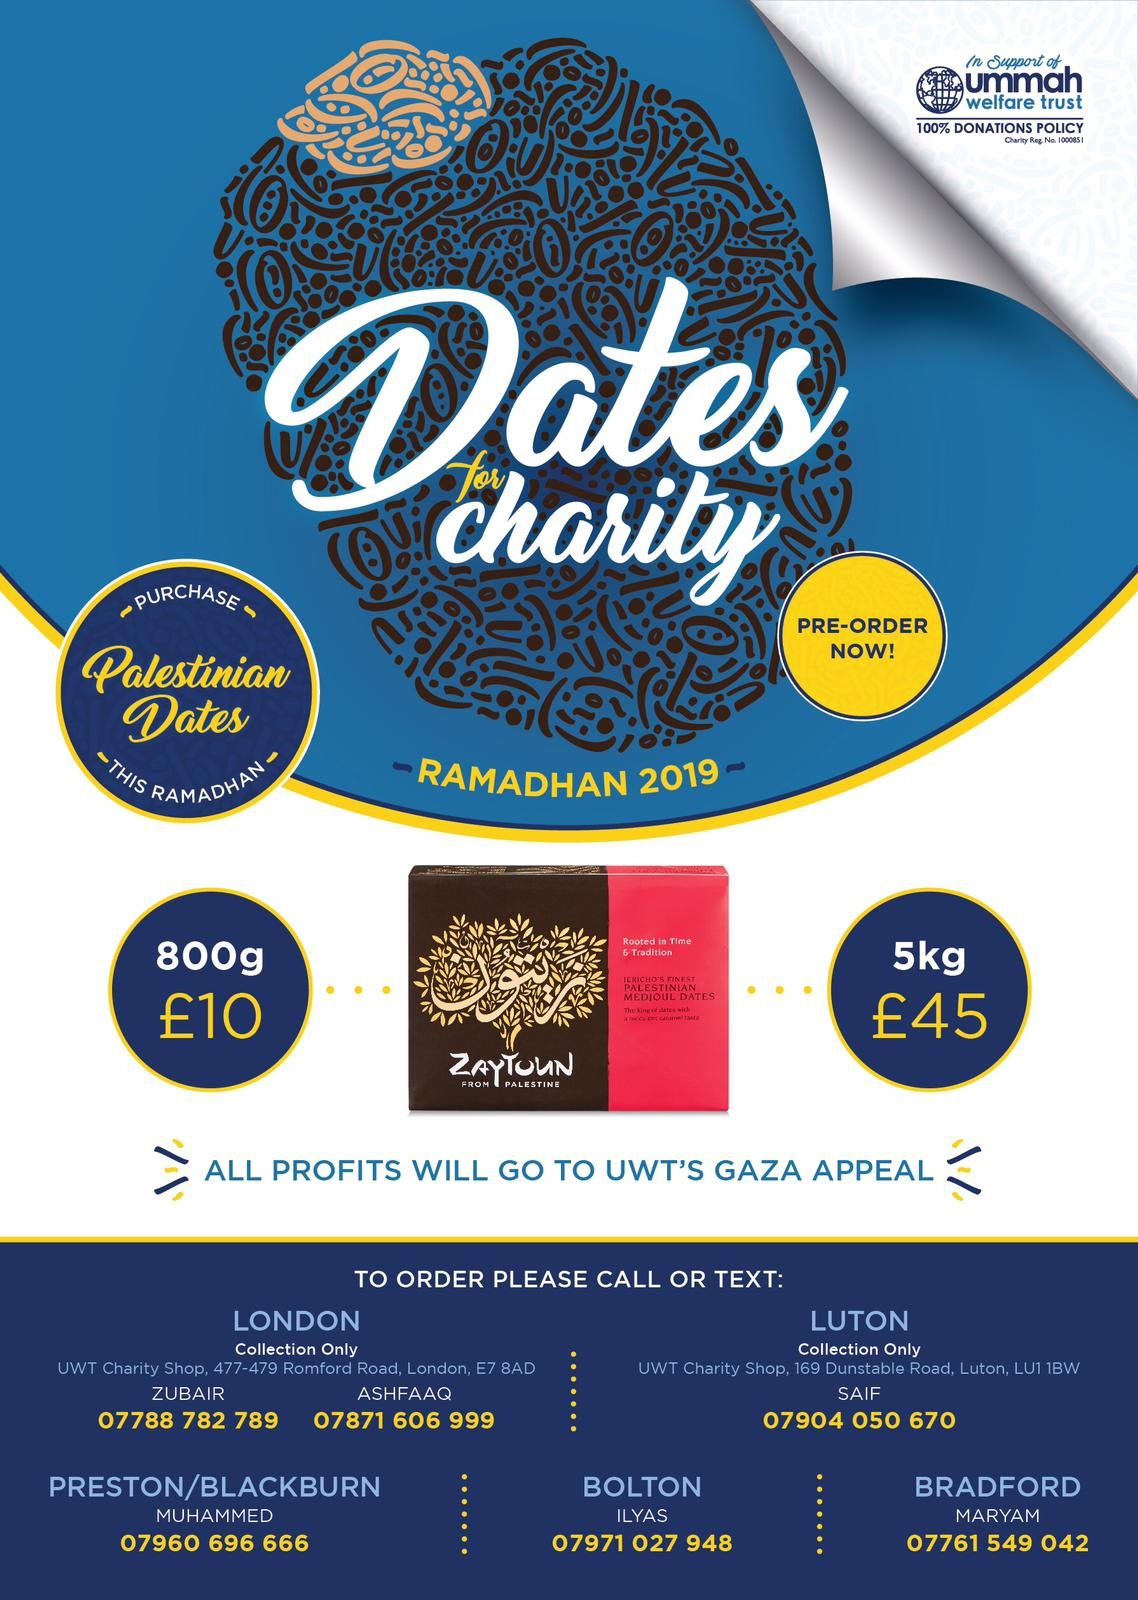 DatesforCharity